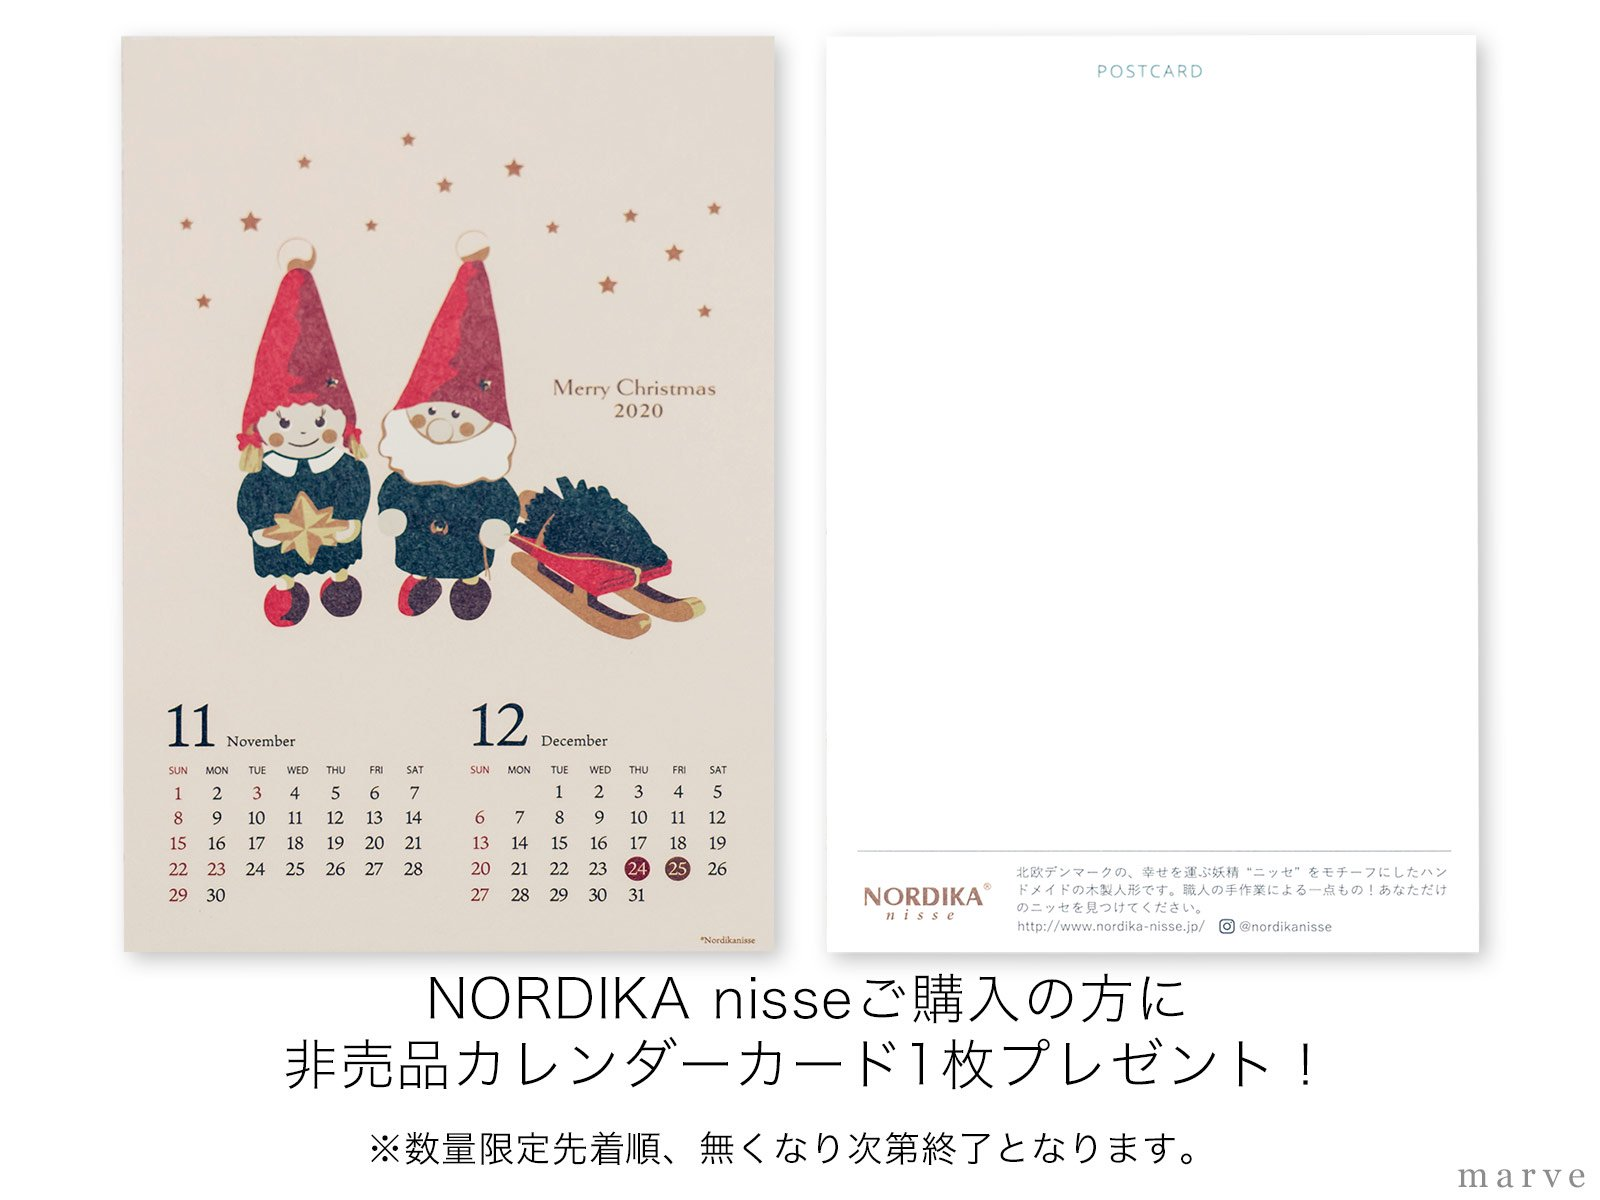 NORDIKA design ニッセドール 「スカーフサンタ サイレンナイト」<img class='new_mark_img2' src='https://img.shop-pro.jp/img/new/icons1.gif' style='border:none;display:inline;margin:0px;padding:0px;width:auto;' />